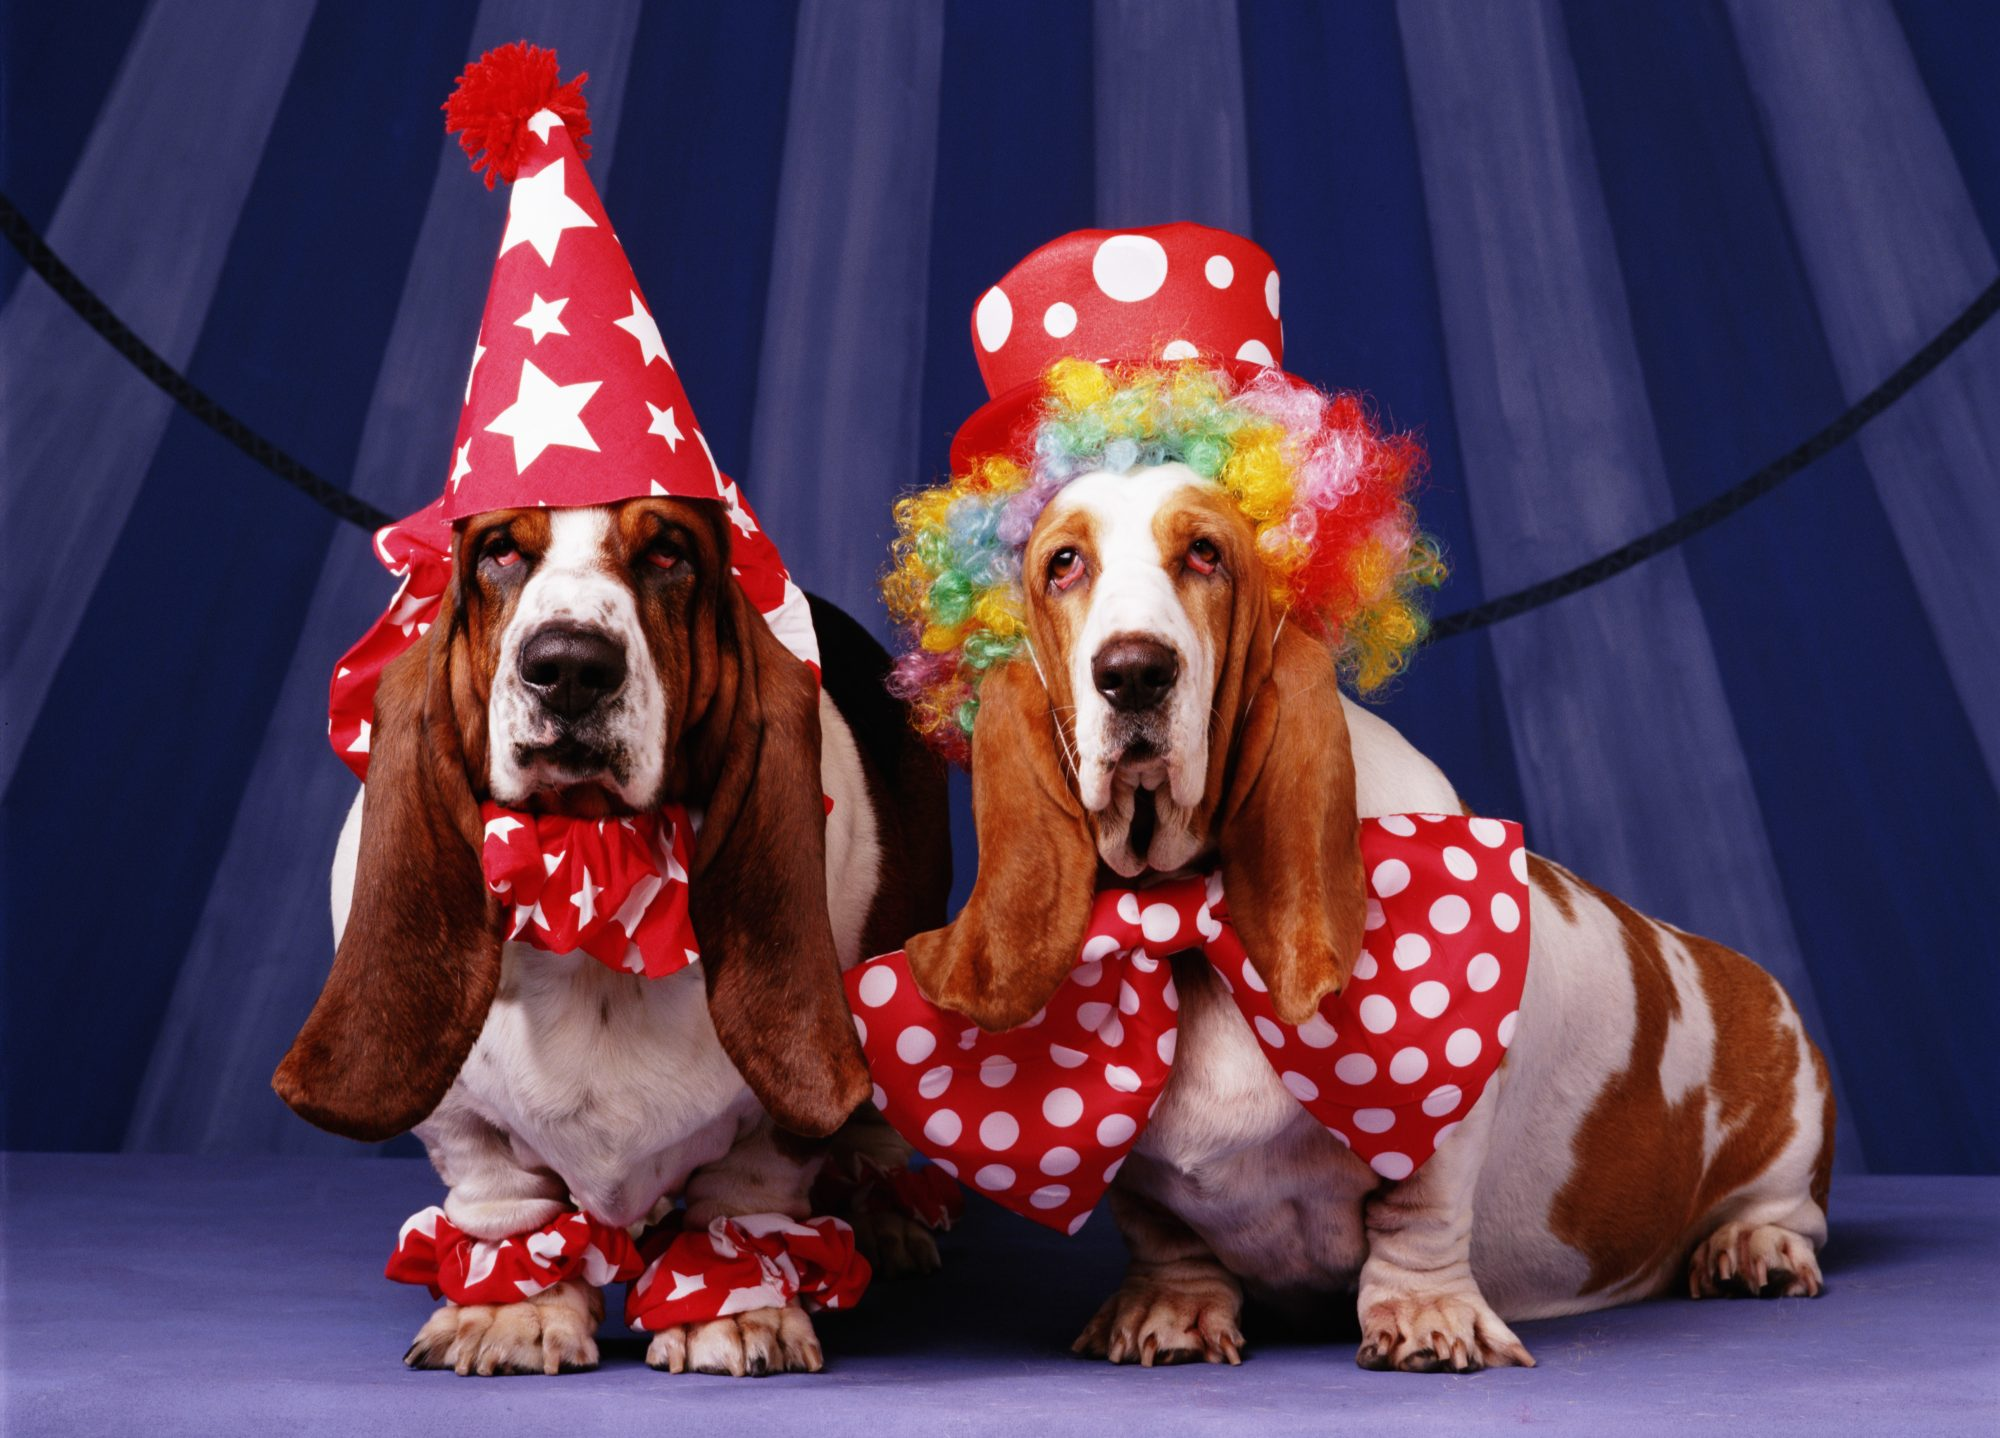 Bassett Hounds dressed as clowns for Halloween